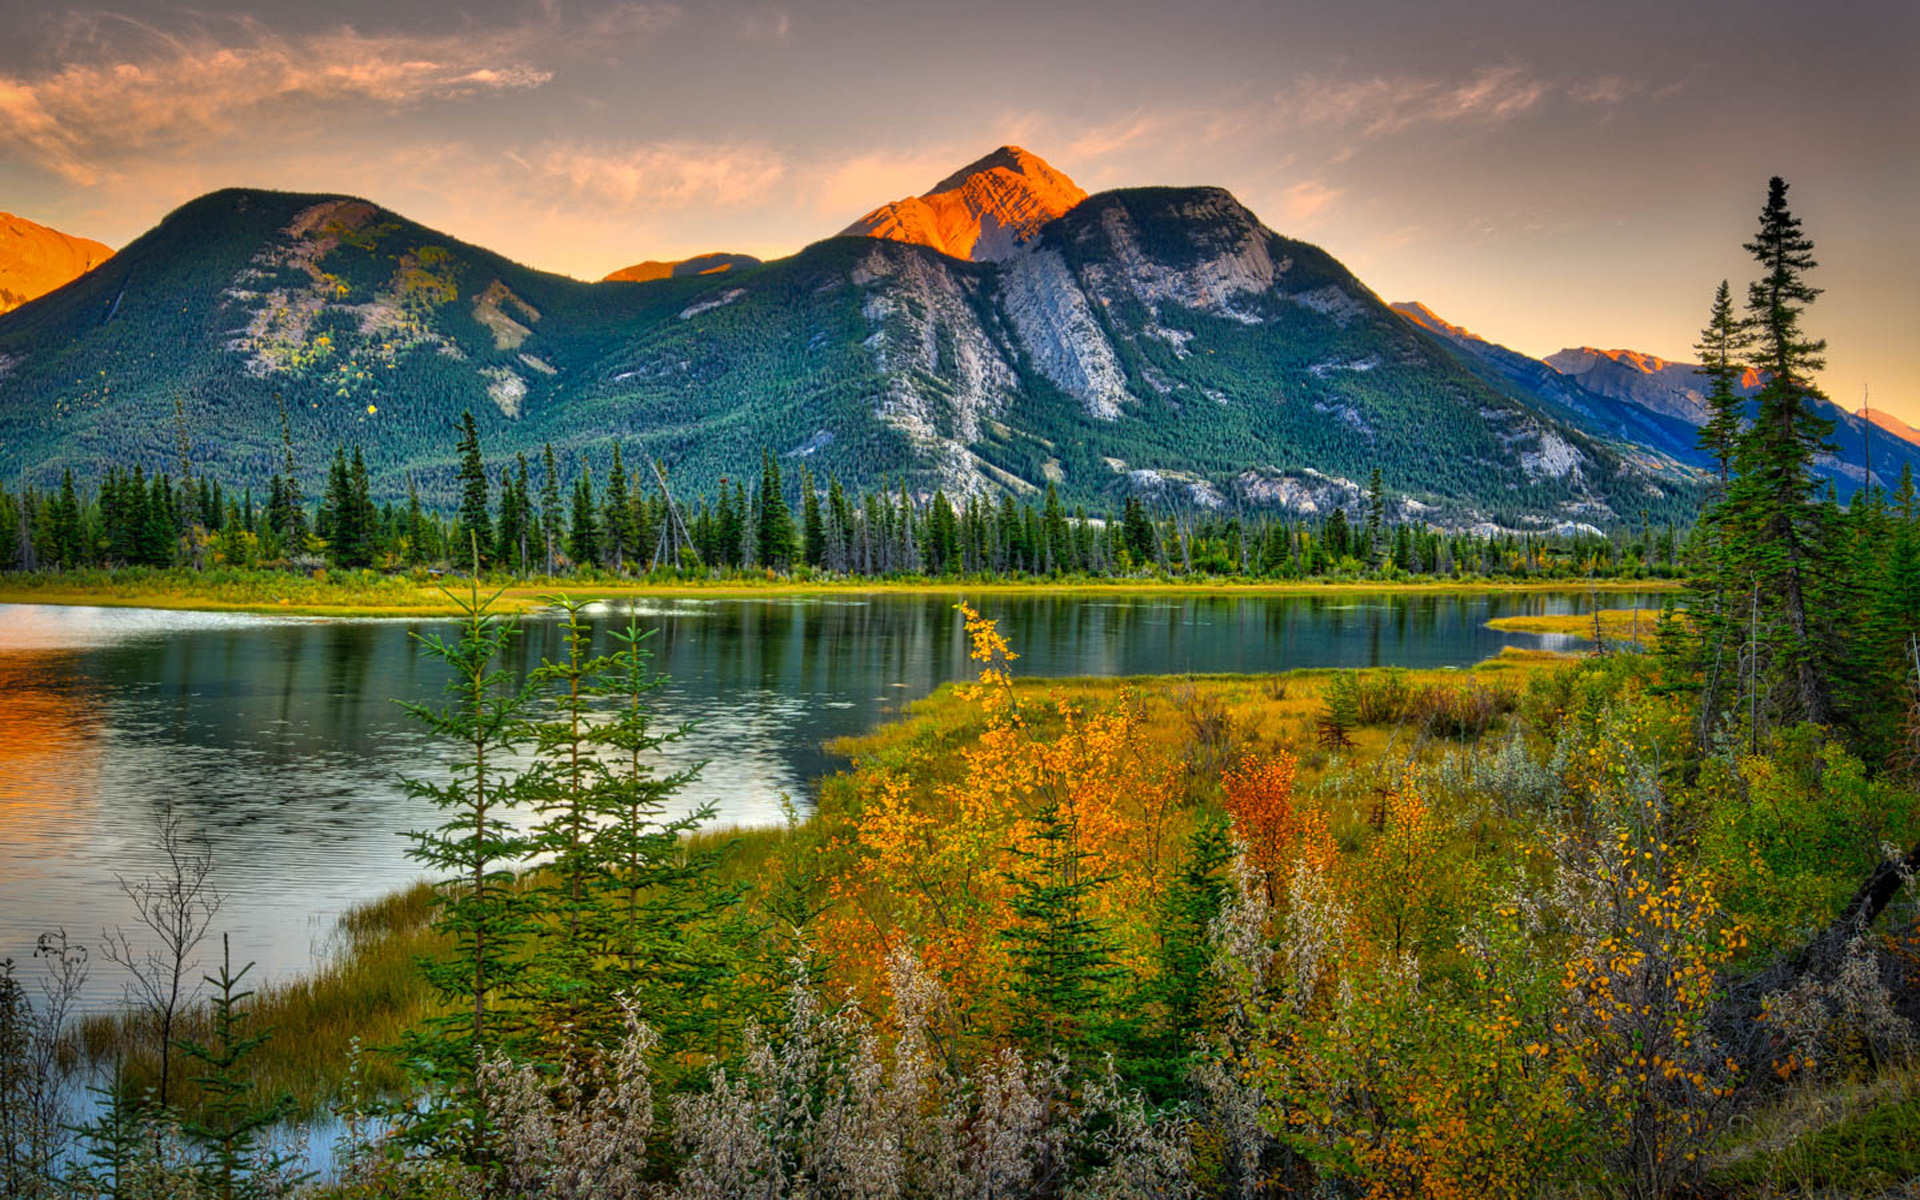 Fall Wallpaper Iphone 4 Natural Beauties Canada Landscape Rocky Mountains Pine